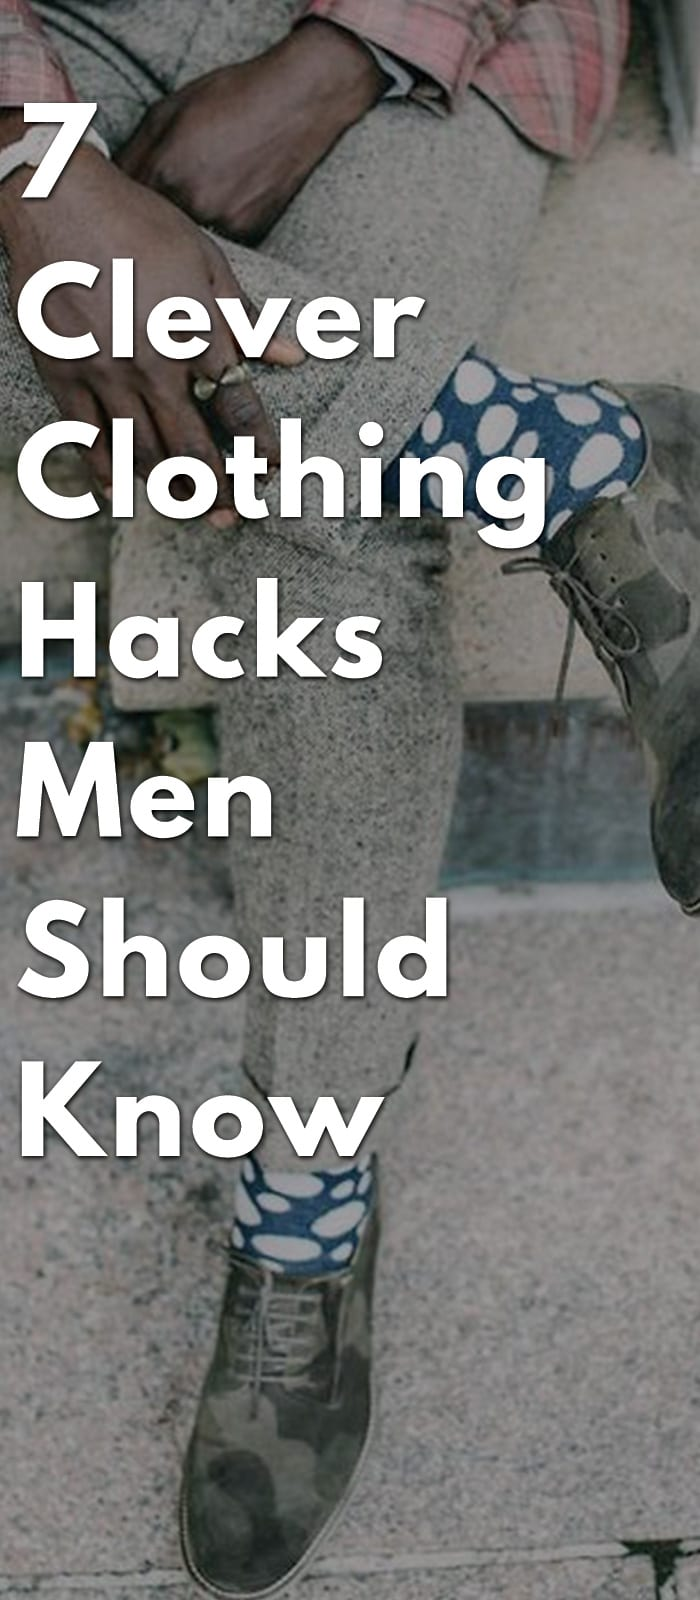 7-Clever-Clothing-Hacks-Men-Should-Know.